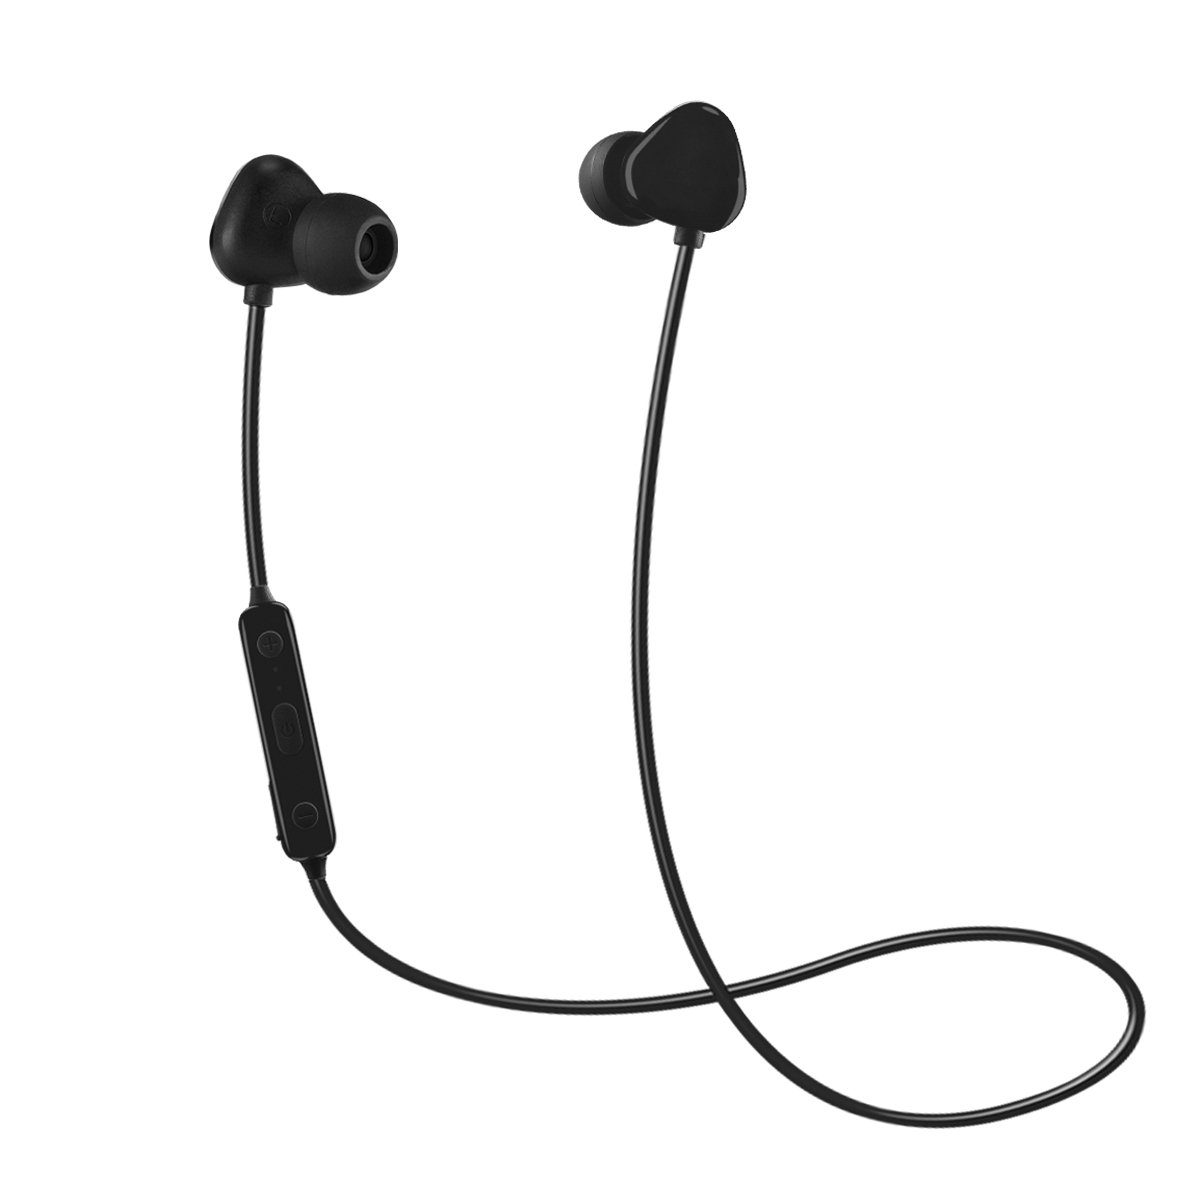 Bluetooth Headphones, BONAI In-Ear V4.2 Wireless Headset HD Stereo Noise Canceling Sweatproof Gym Sport Earphones for iPhone X/8/8 plus/7/6, Samsung S8/S7/S6 Note 8/7 and Android Smartphones